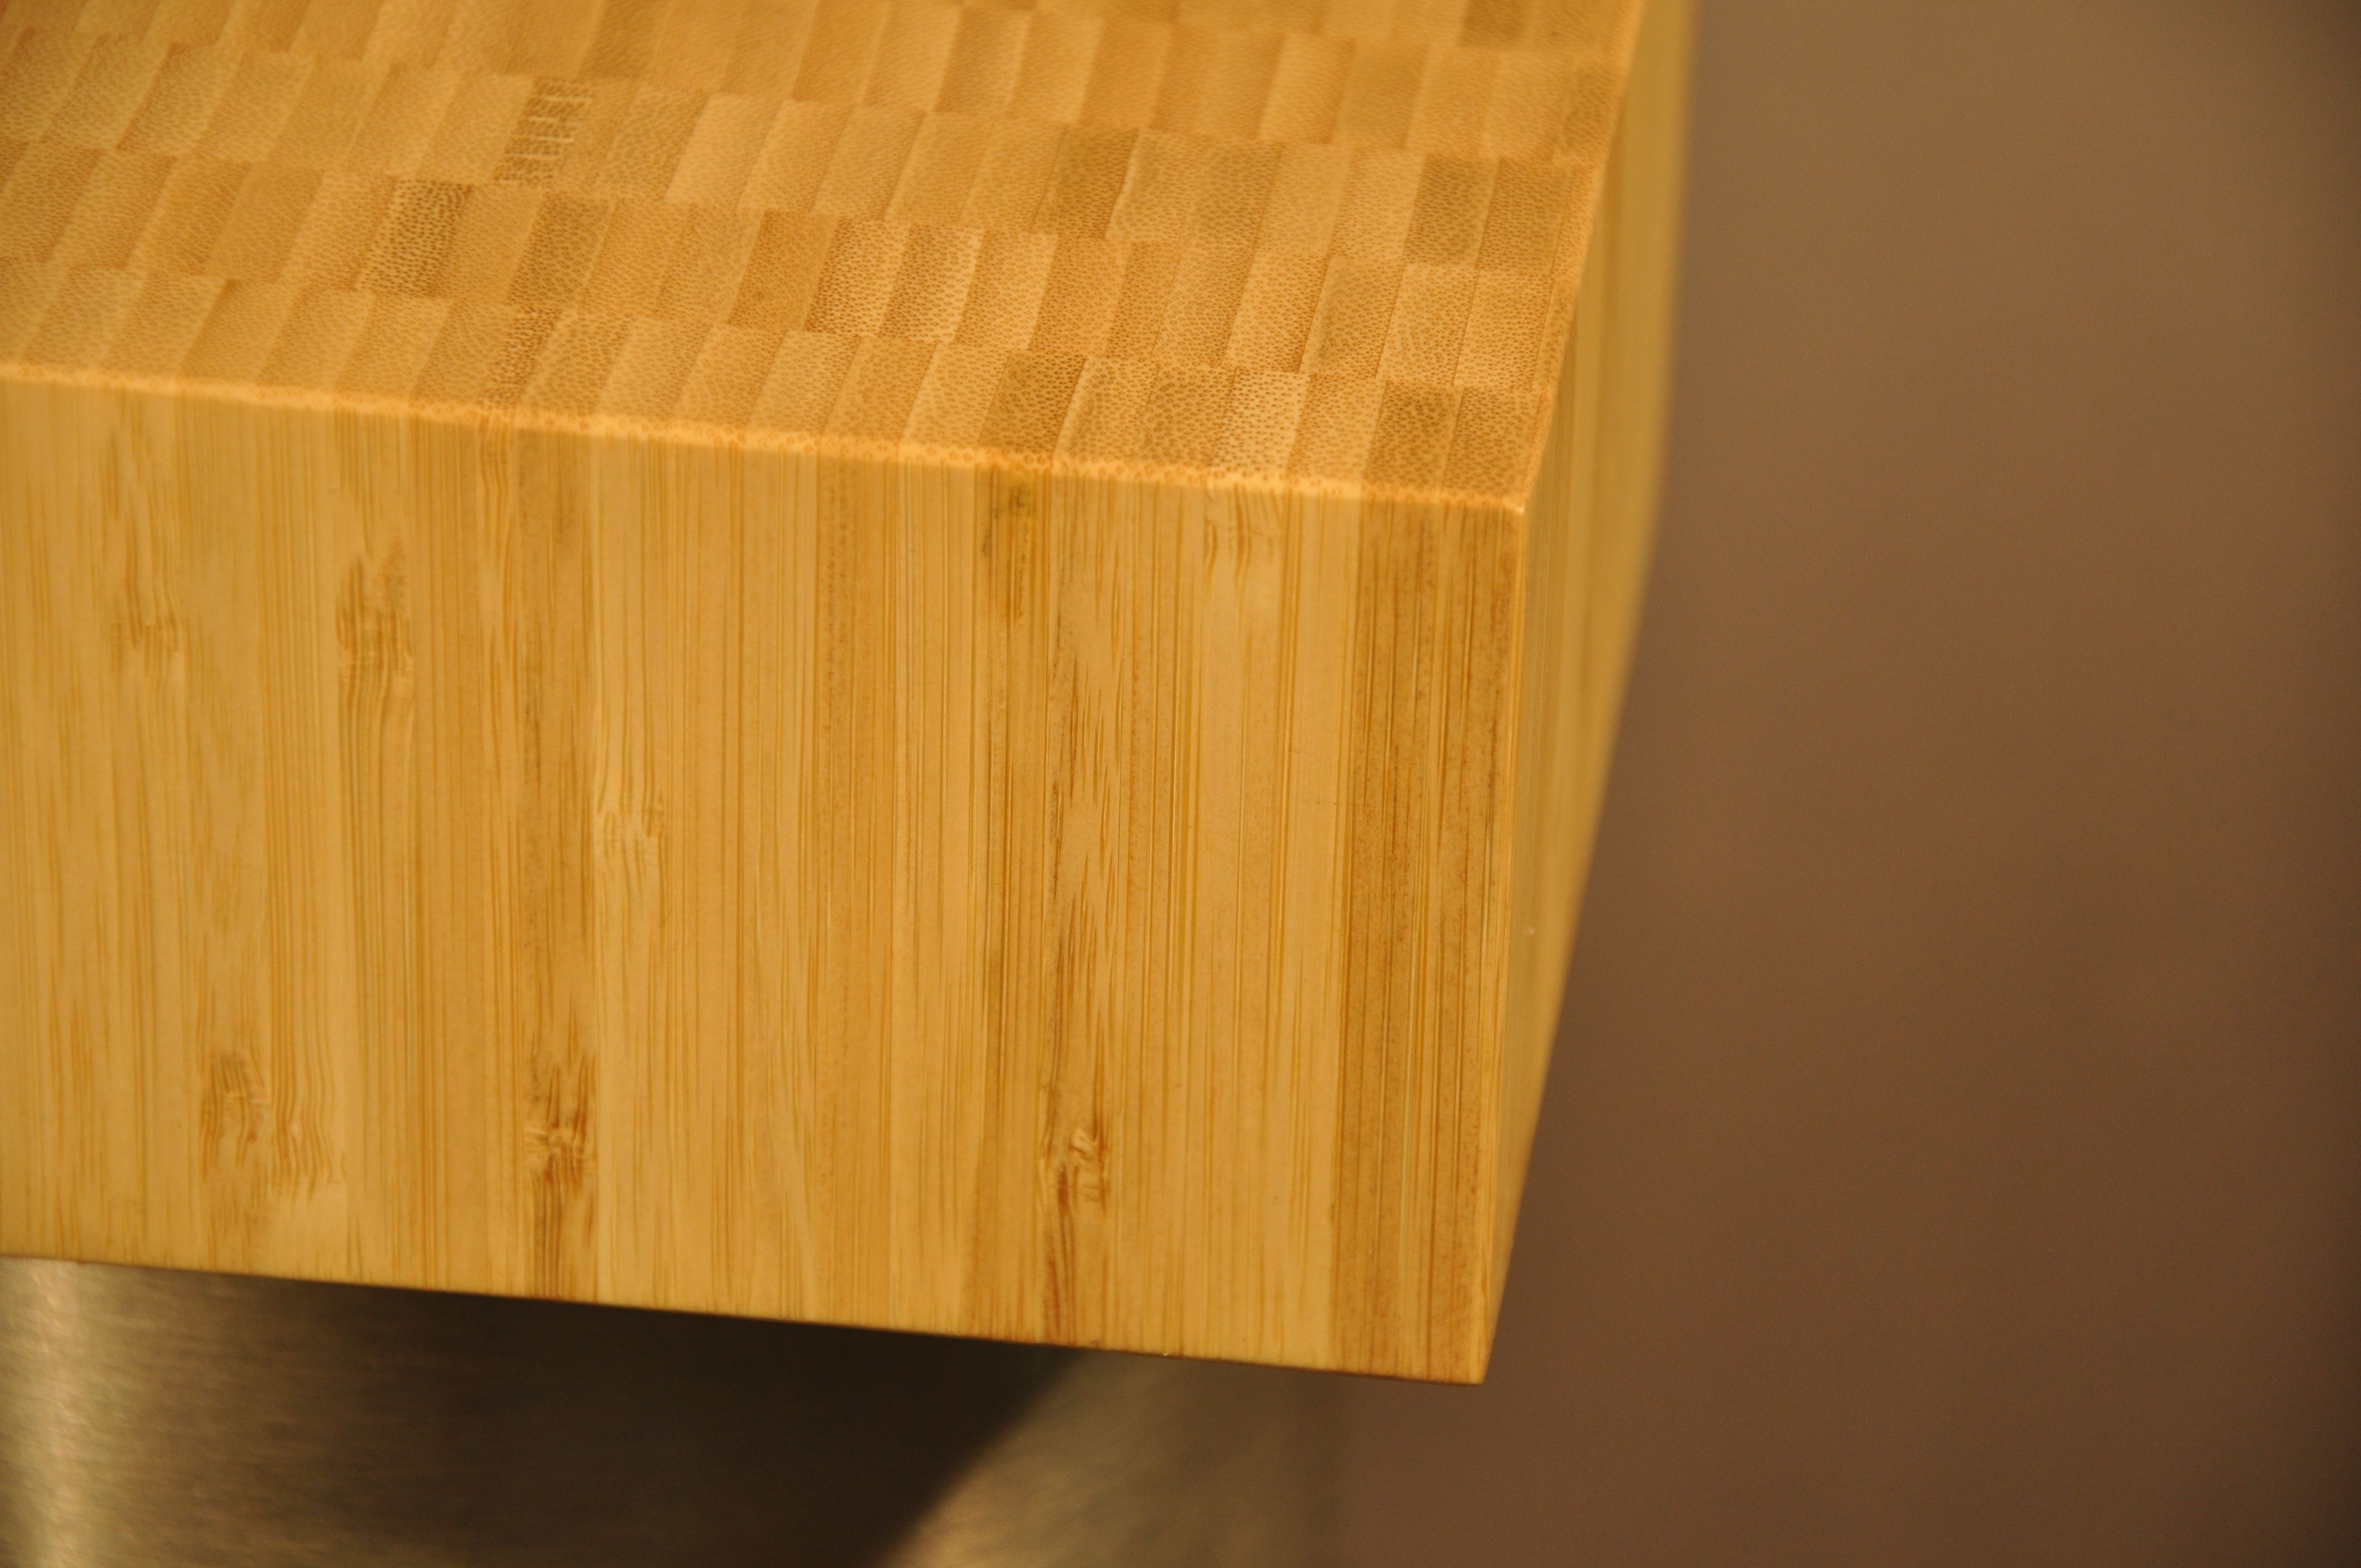 End Grain Wood Countertops Are The Choice Butcherblock For Professional  Chefs And Bakers. This Construction Is Perfect For U0027cut And Chopu0027 And Food  Prep.